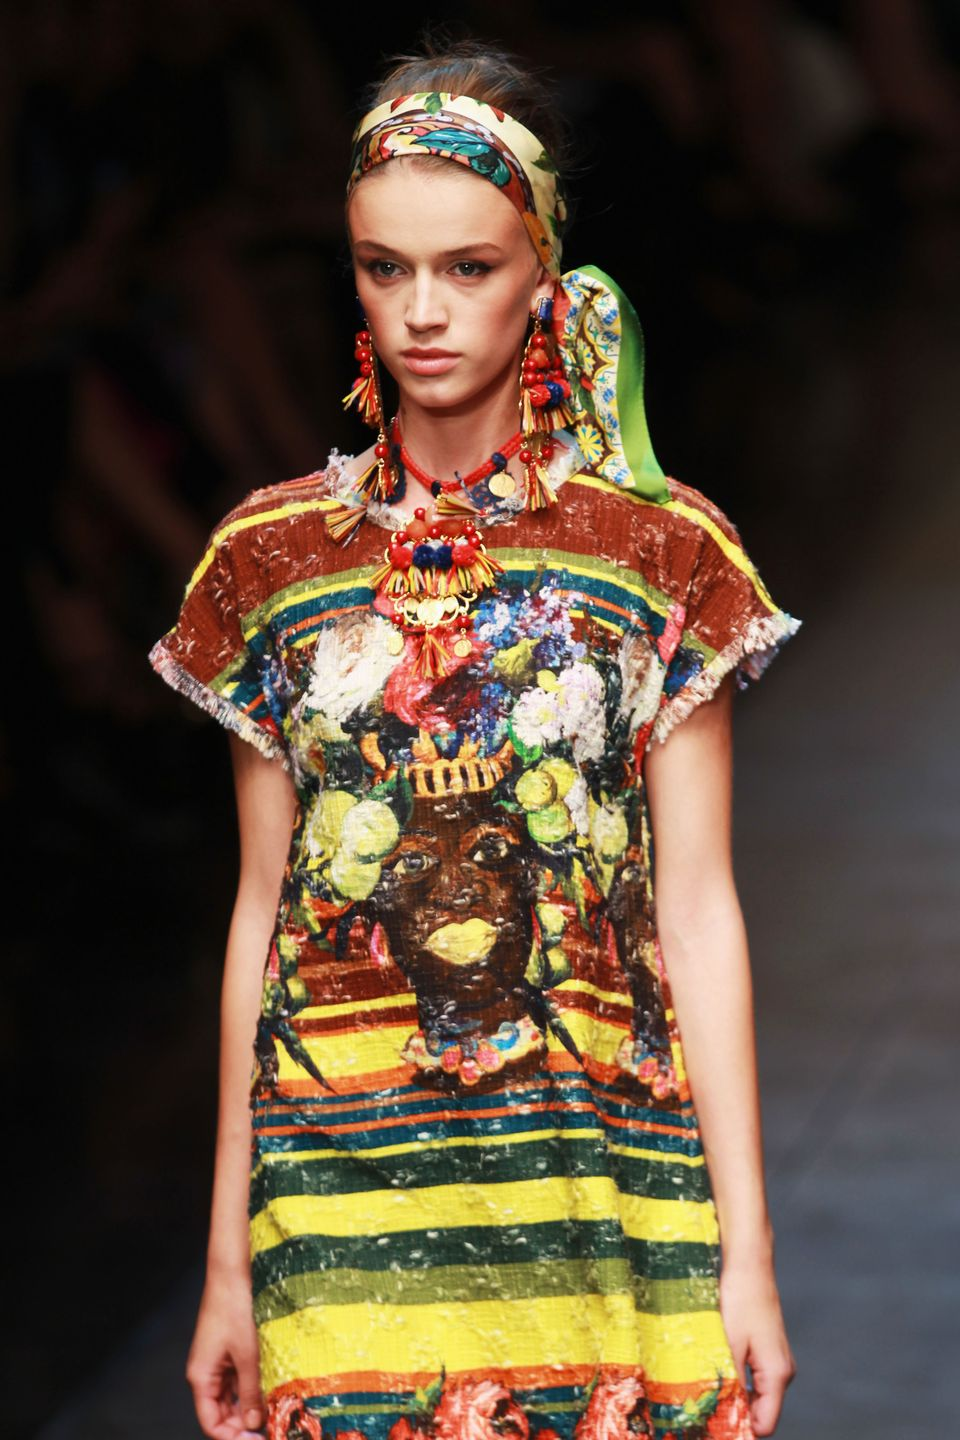 MILAN, ITALY - SEPTEMBER 23:  A model walks the runway at the Dolce & Gabbana Spring/Summer 2013 fashion show as part of Mila